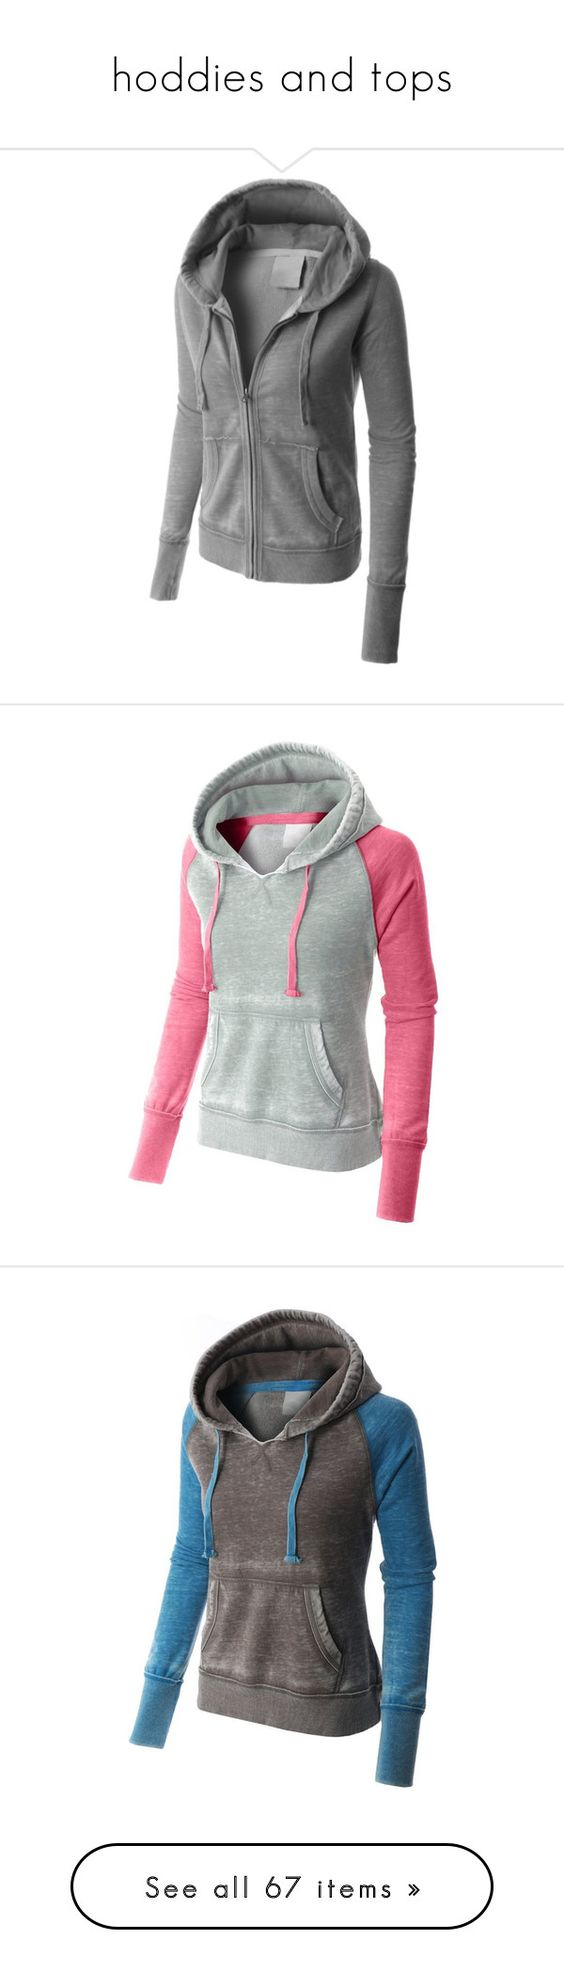 """hoddies and tops"" by nanette-253 ❤ liked on Polyvore featuring tops, hoodies, vintage hoodies, pullover hoodies, fleece pullover, sweatshirt hoodies, lightweight pullover hoodie, lightweight hooded sweatshirt, thermal hooded sweatshirts and pullover hoodie"